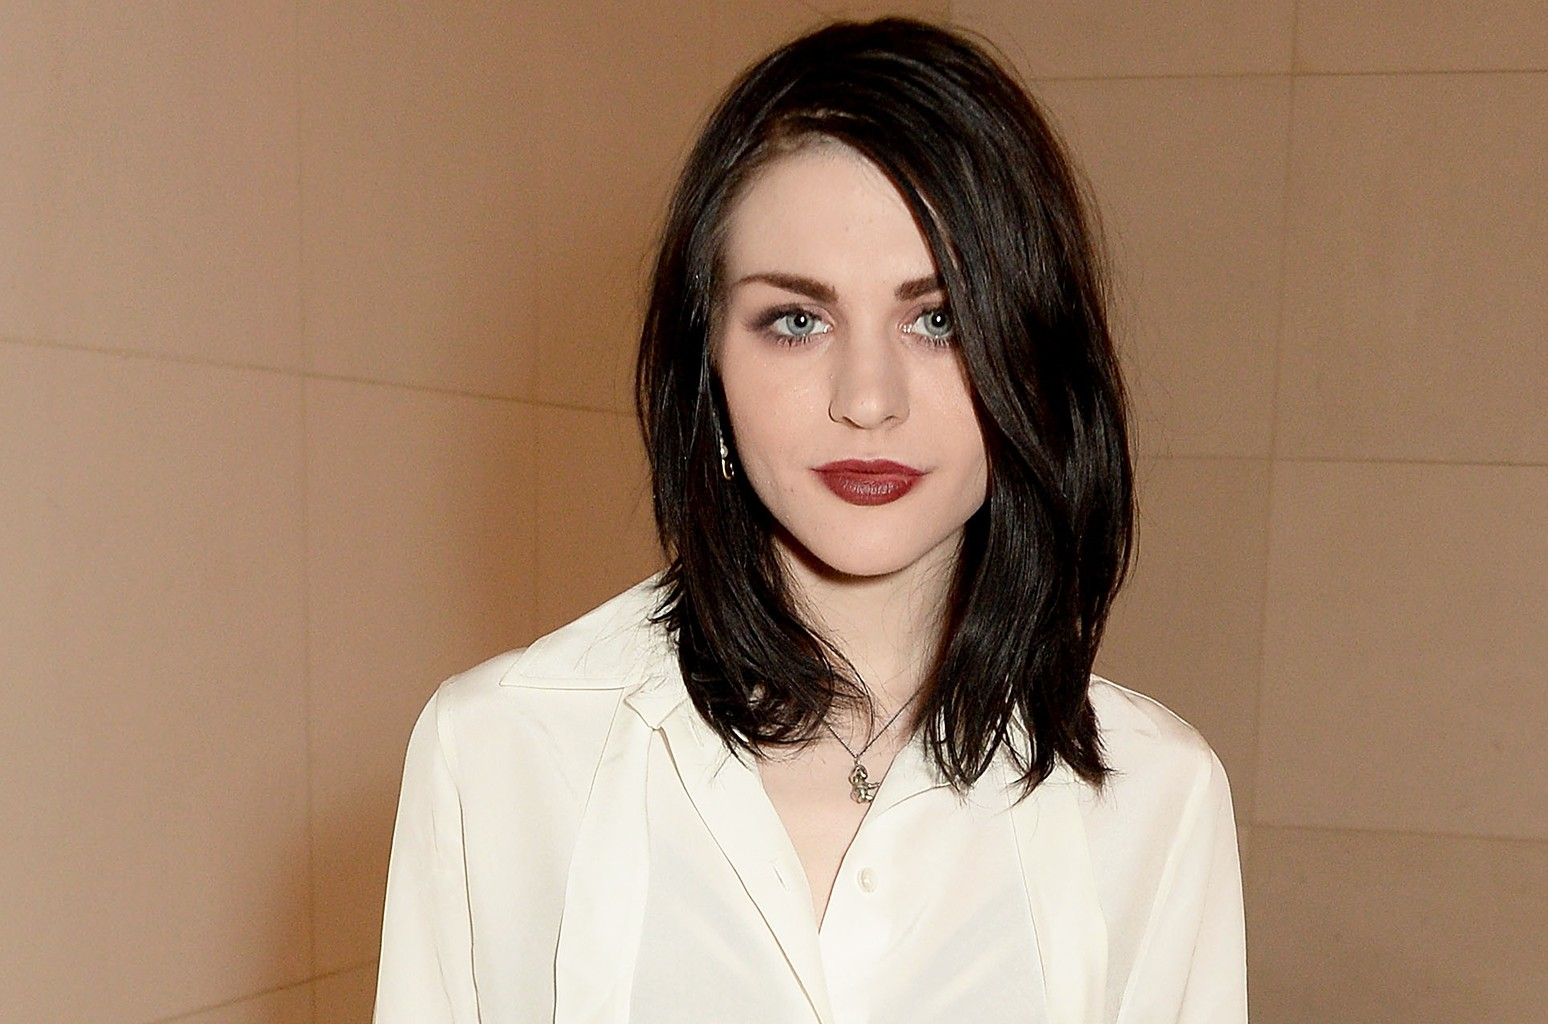 Frances Bean Cobain photographed in 2016